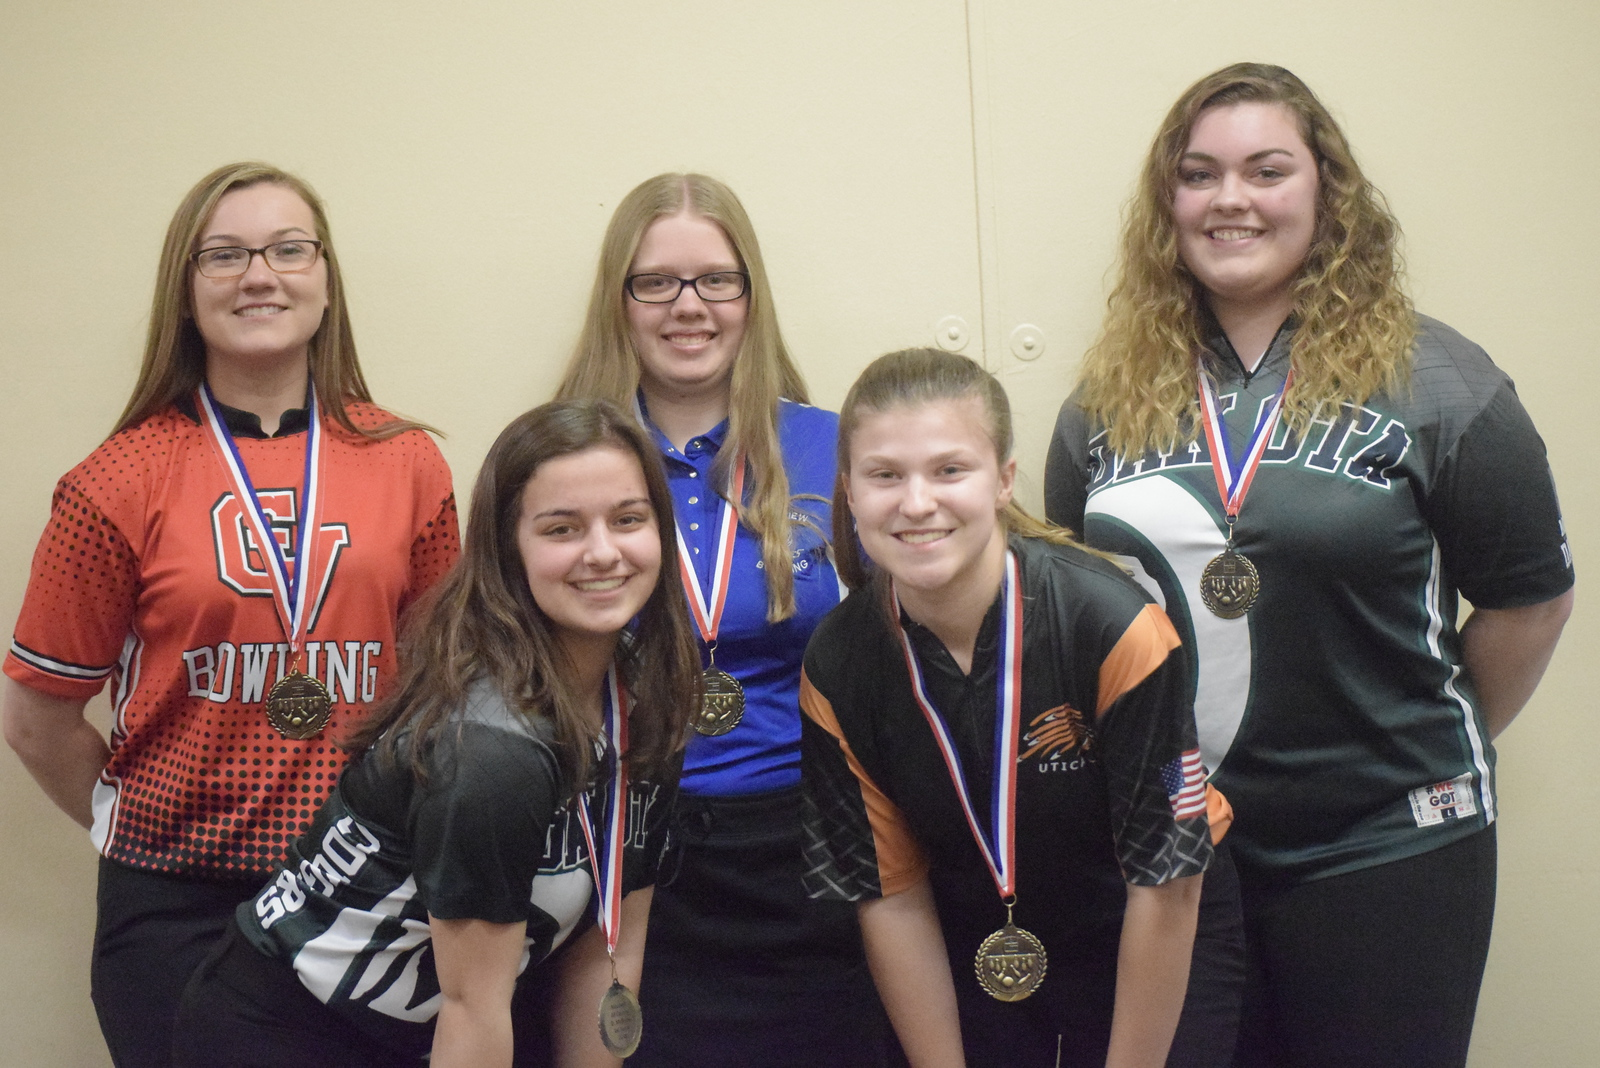 All-Macomb County First Team, from left, Lexi Smigiel of Chippewa Vlaley, Danielle McBride of Dakota, Stephanie Schalk of Lakeview, Kenzee Barthlow of Utica and Jordan Reiss of Dakota. Not pictured, Laurin Prebelich of Ford.